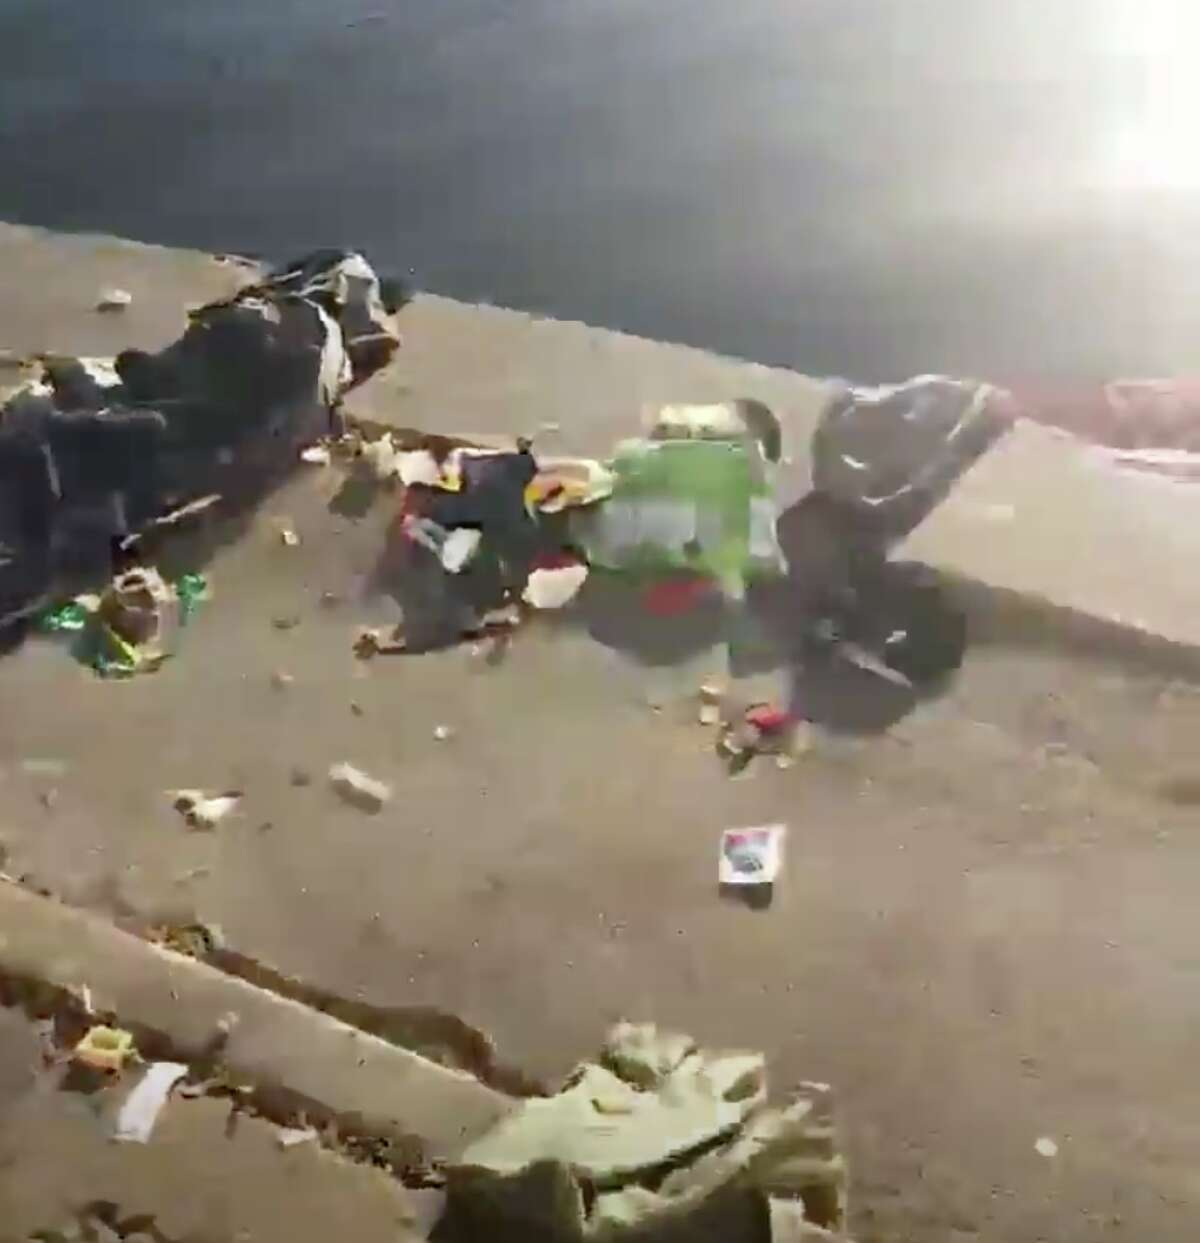 A video shows a jogger dismantling a homeless man's encampment at Lake Merritt and some of the witnesses say he threw some of the items into the lake.